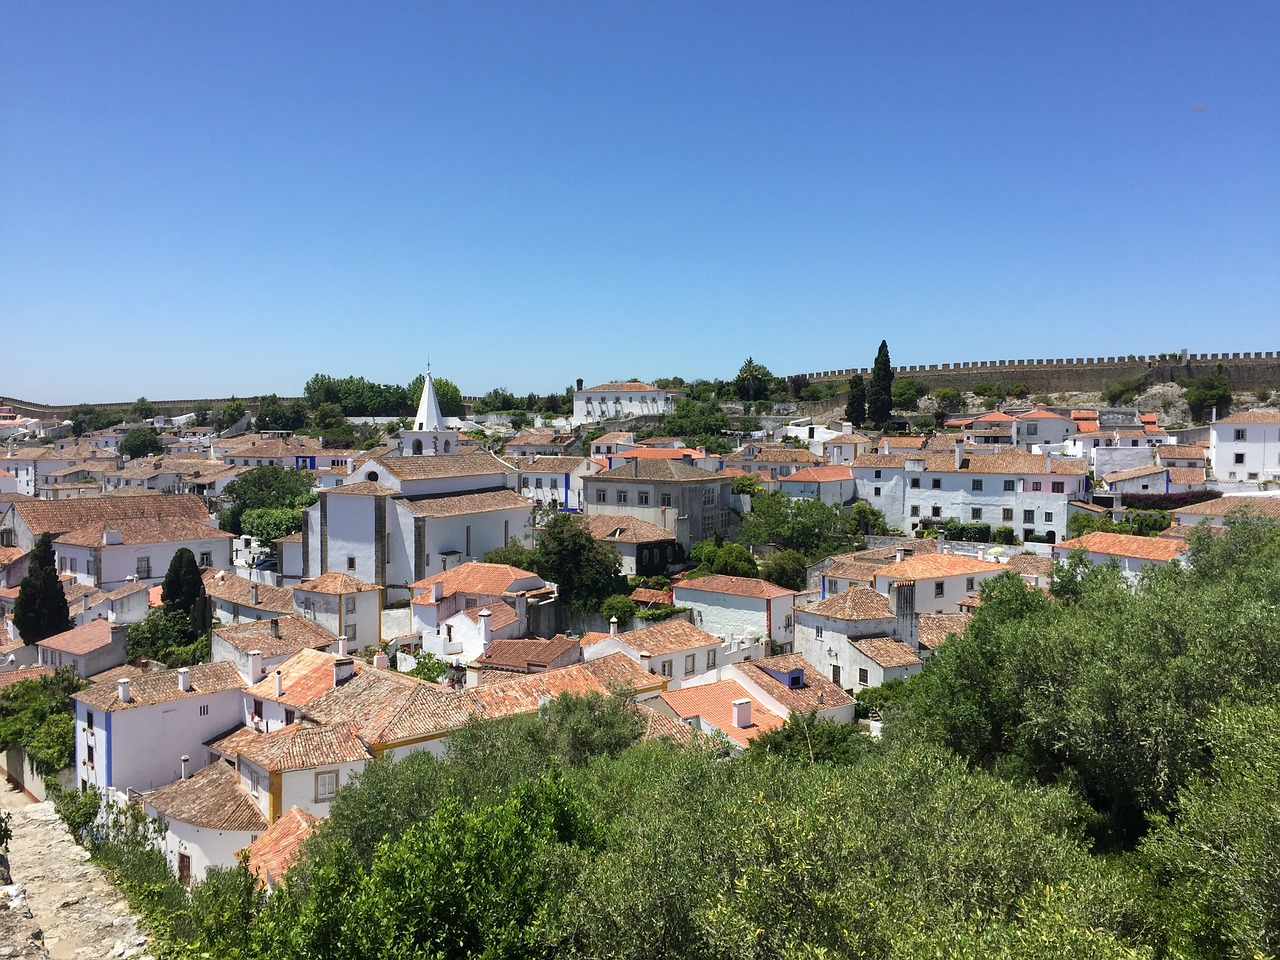 Óbidos, a city within castle walls © Pixabay